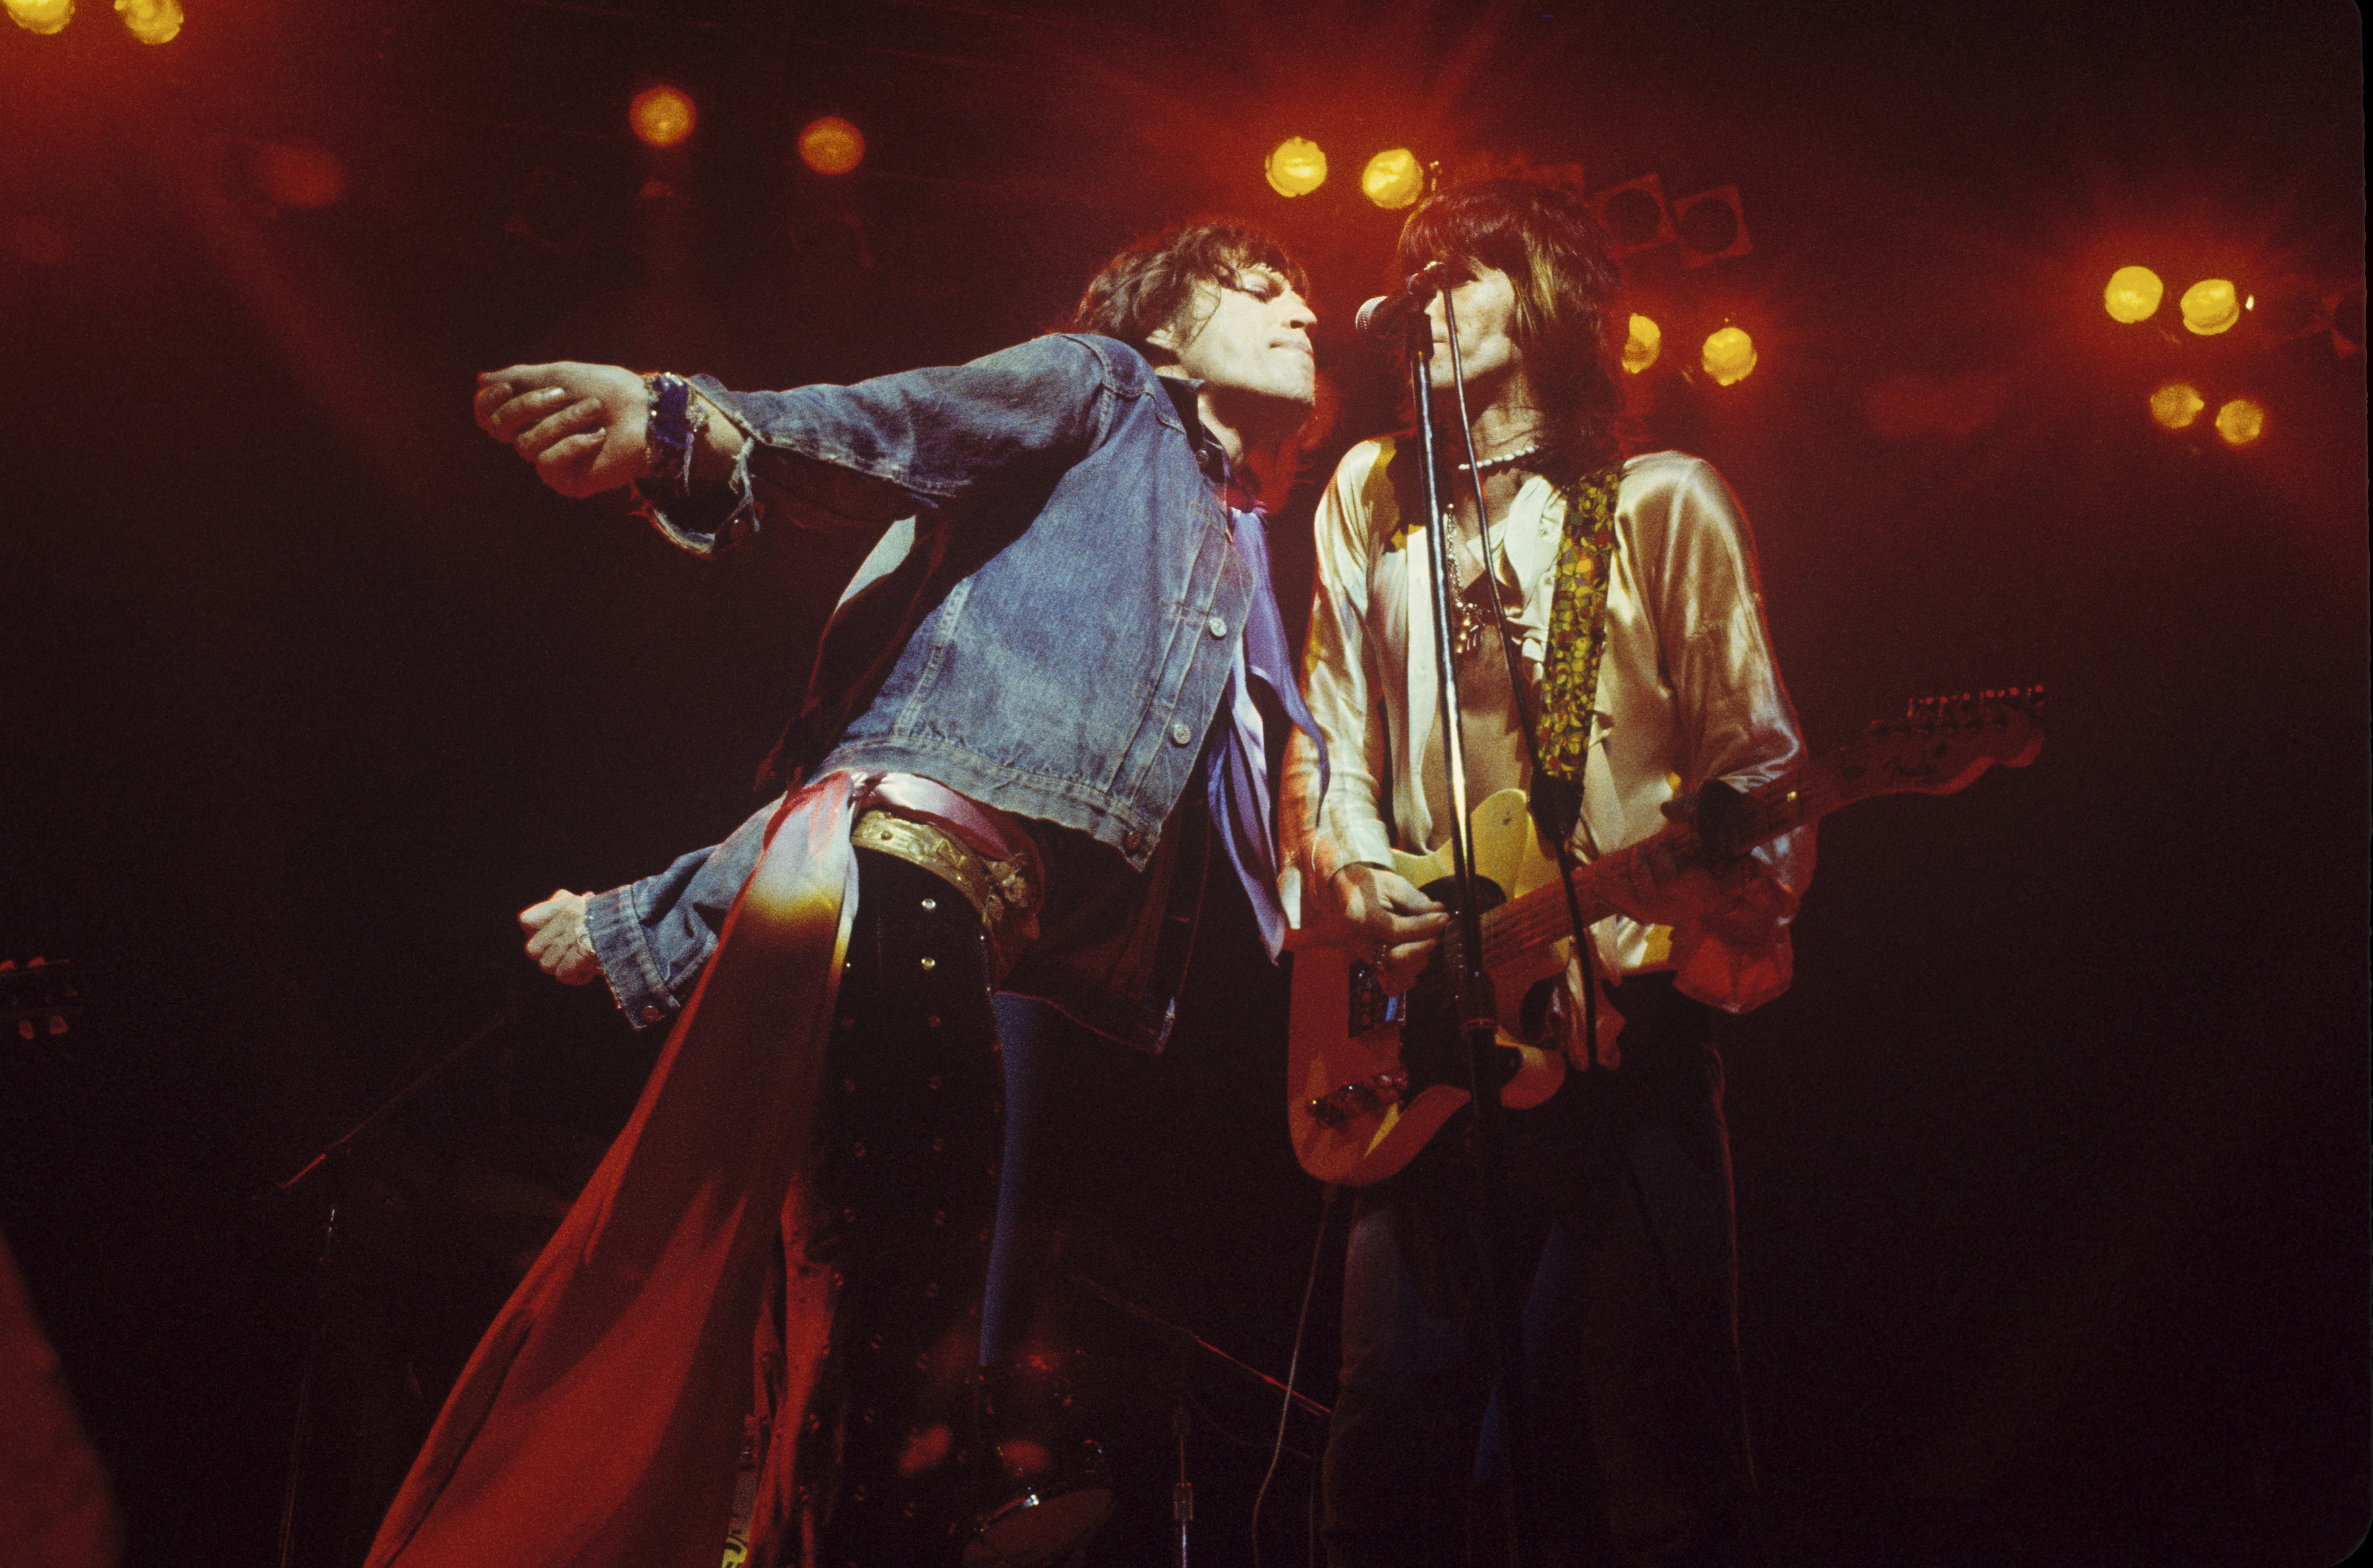 zedisred: THE ROLLING STONES' 1972 AMERICAN TOUR | STP